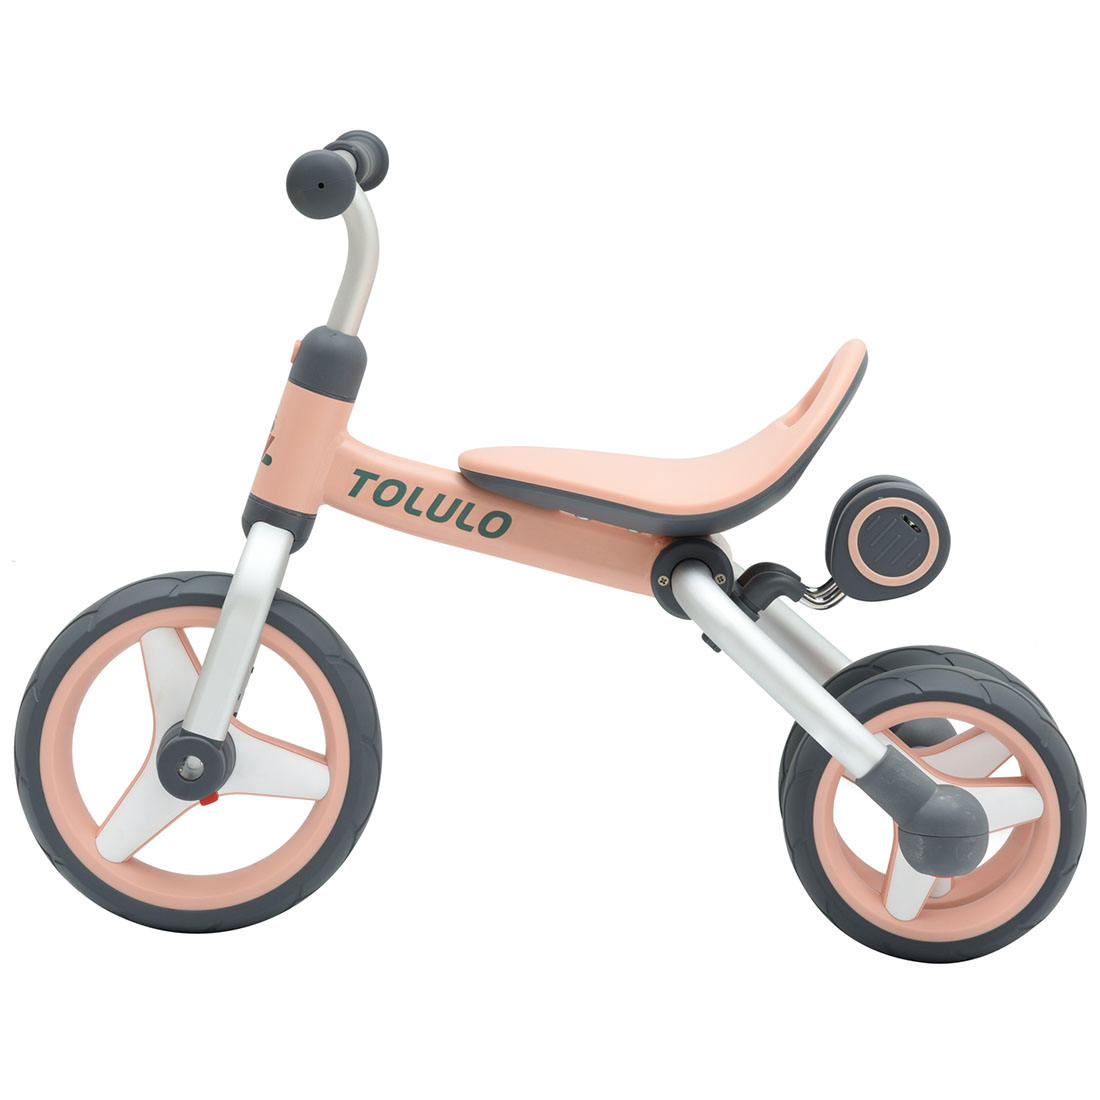 High quality Kids ride on car Multifunction Aluminum 3 wheel bike kids Tricycle child bike tricycle for 2-6 years